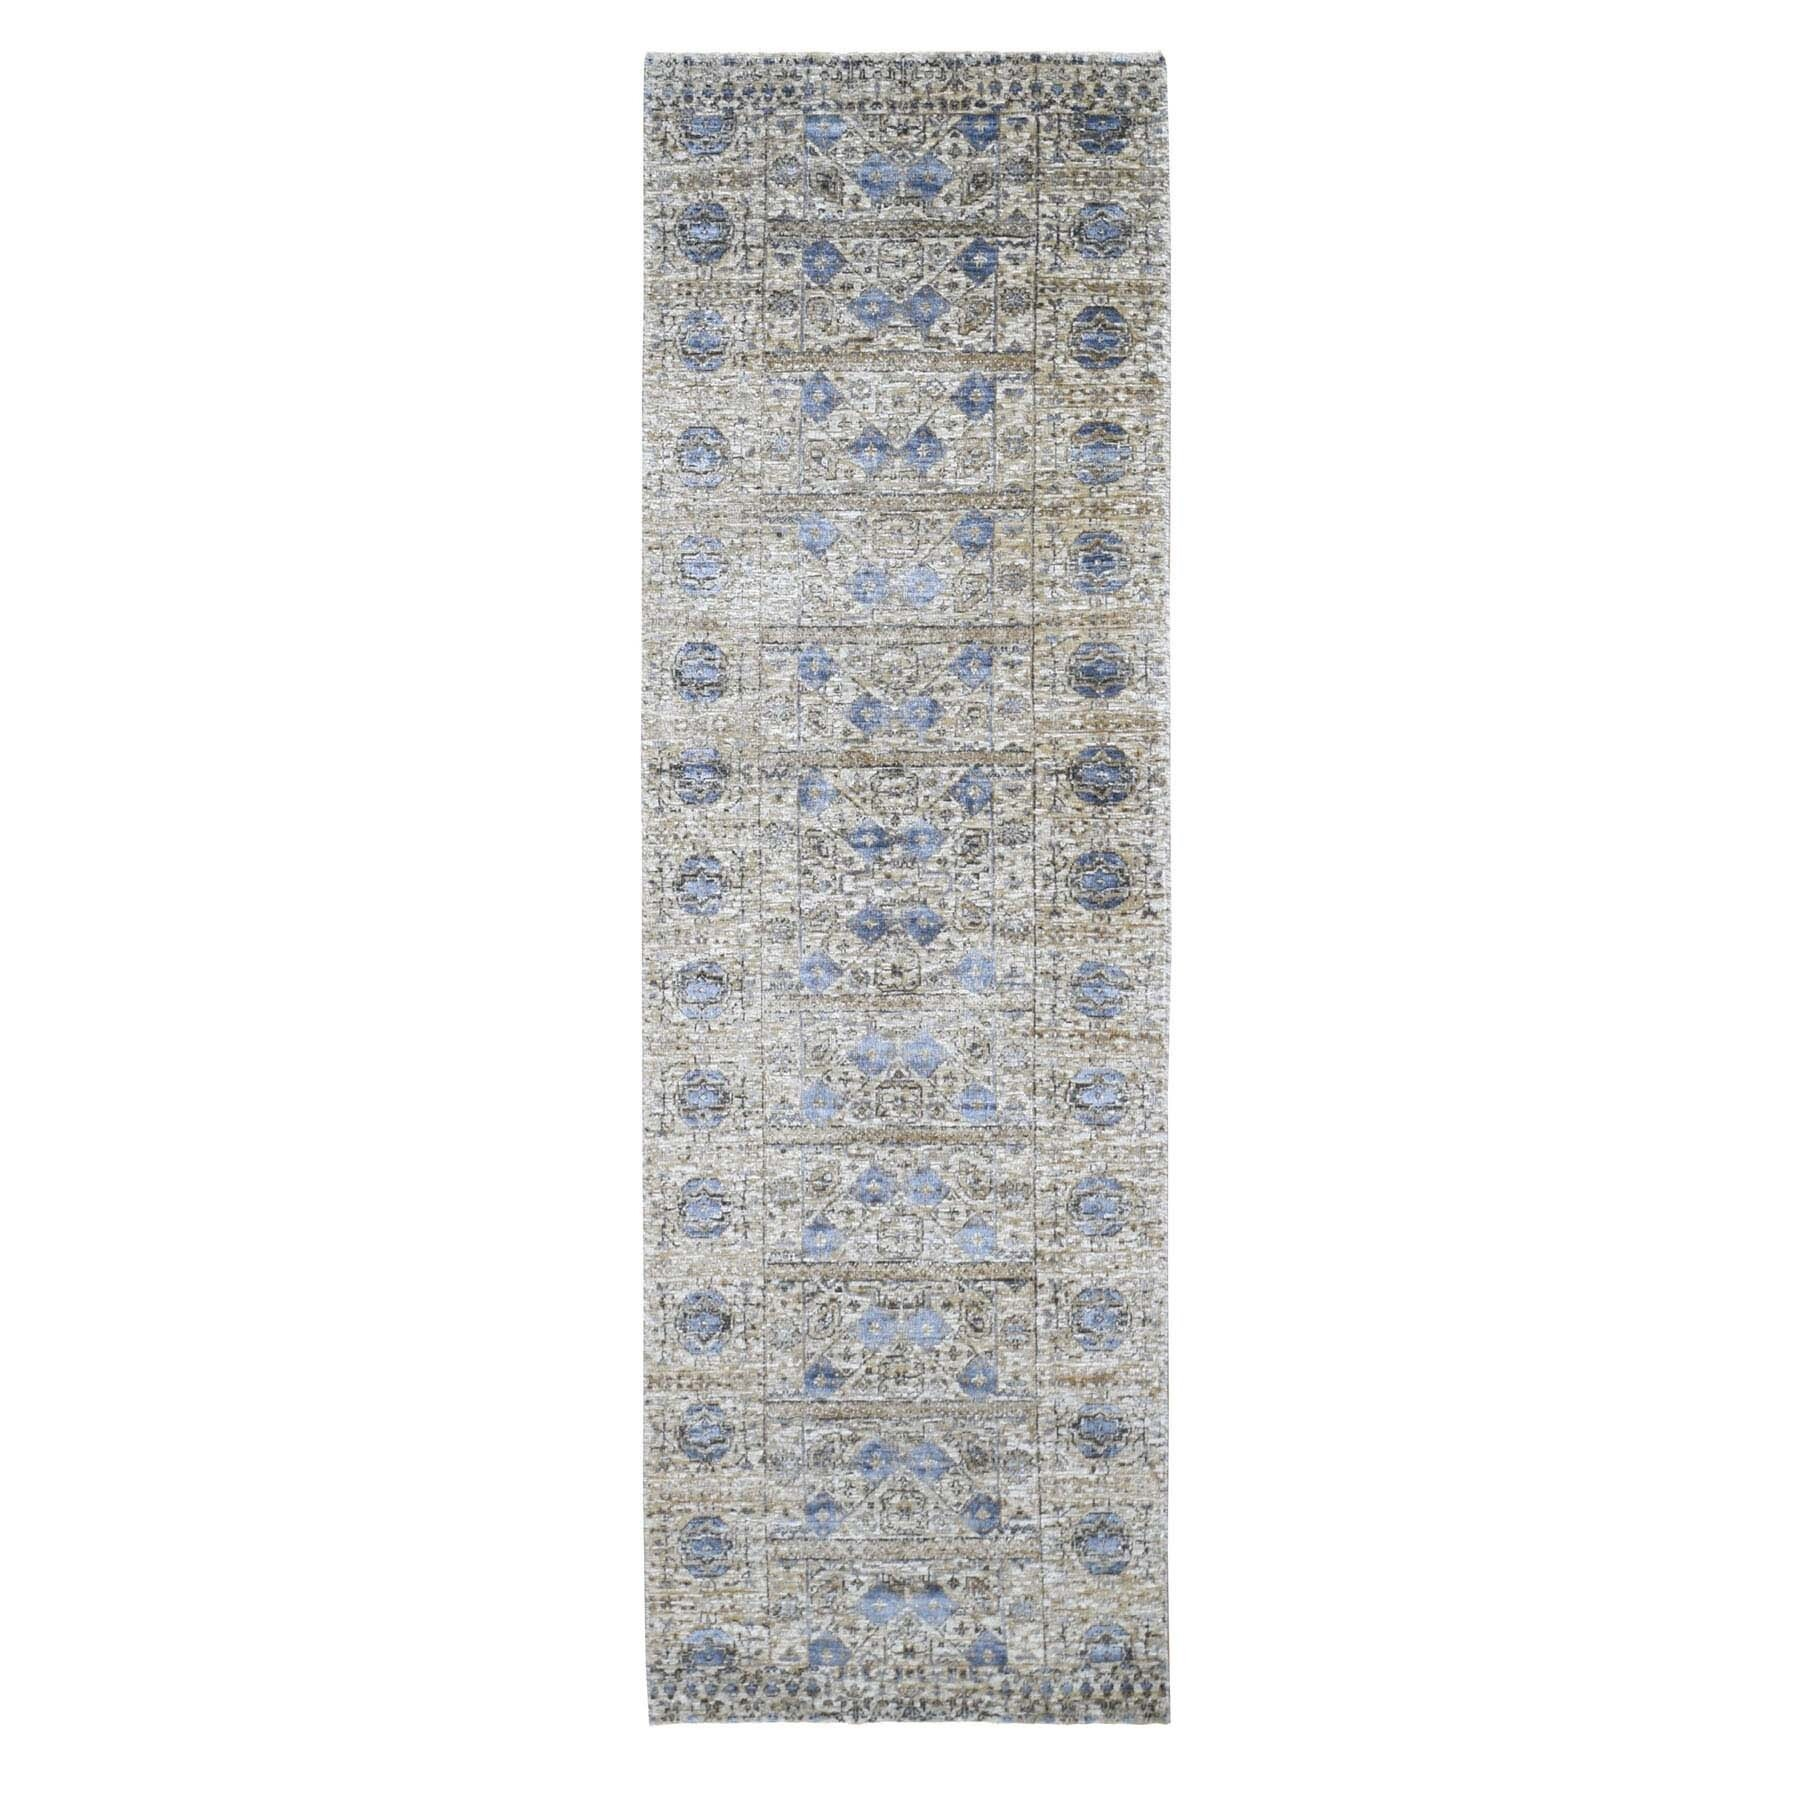 "2'6""X8'2"" Silk With Textured Wool Mamluk Design Runner Hand Knotted Oriental Rug moad9066"